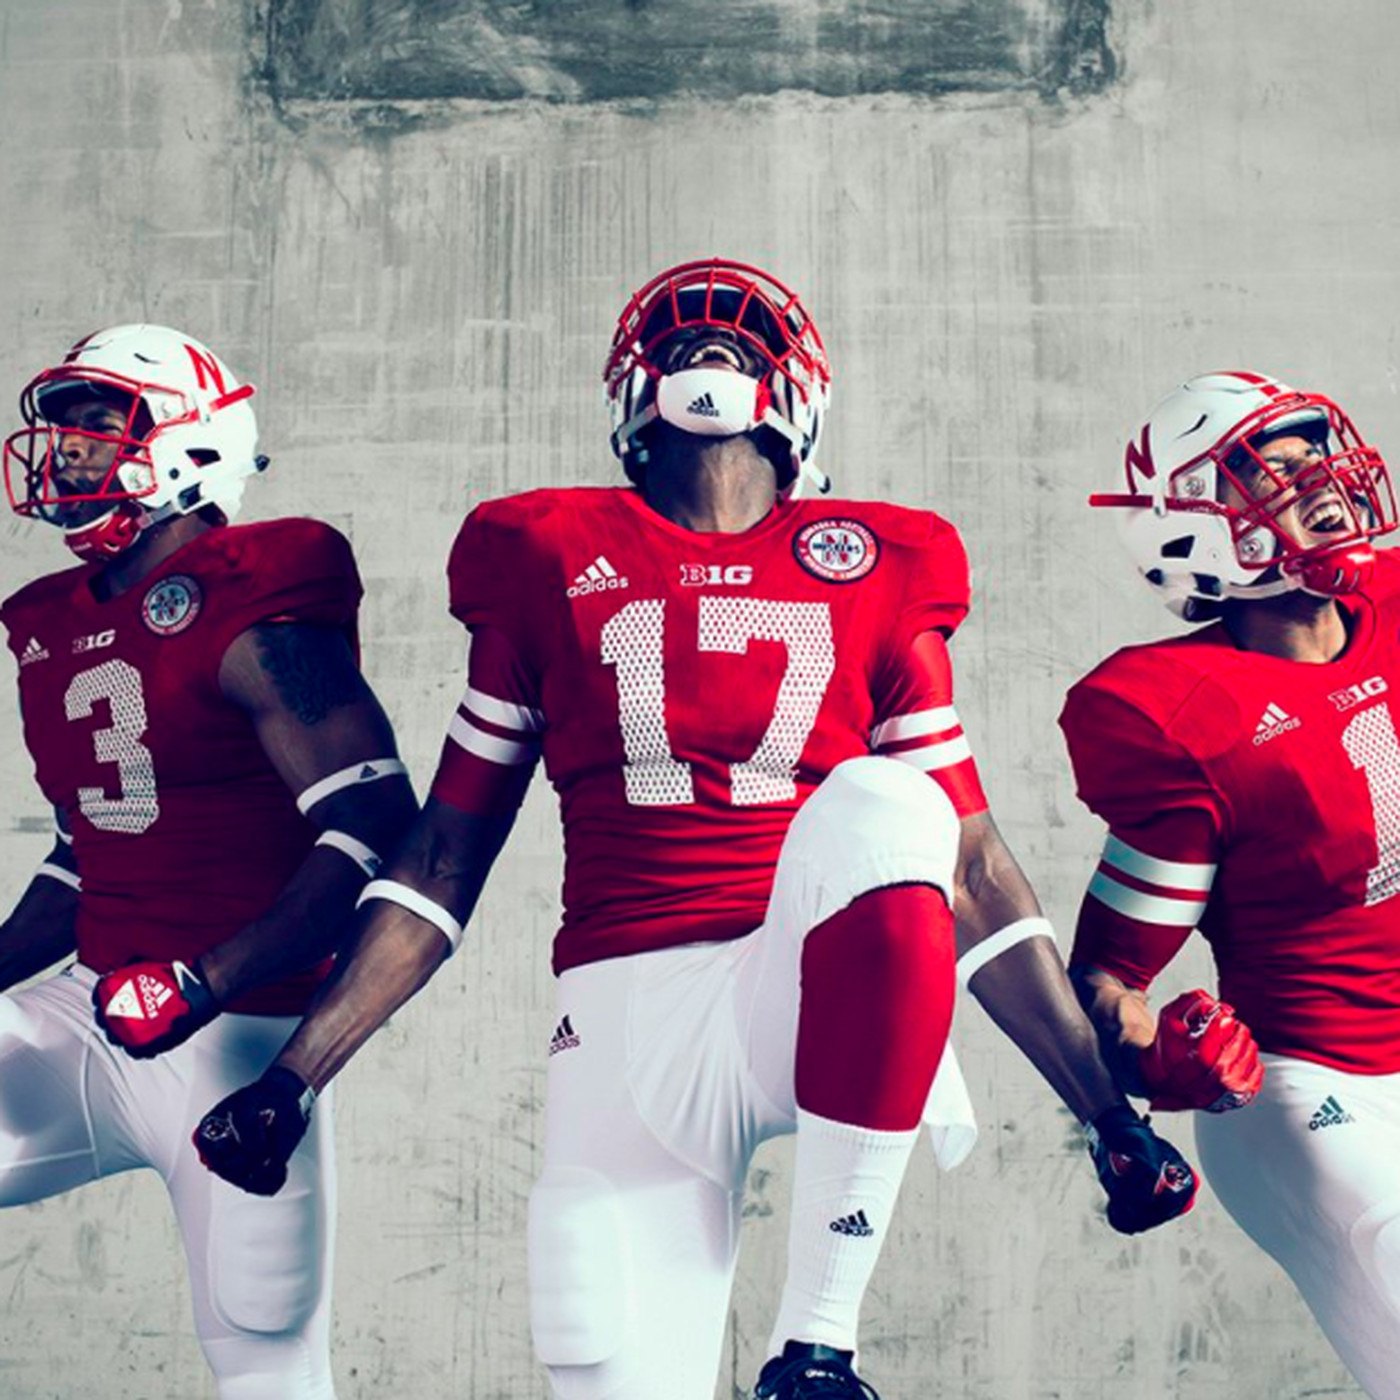 020379cba Adidas  college football uniforms are no longer universally terrible -  SBNation.com